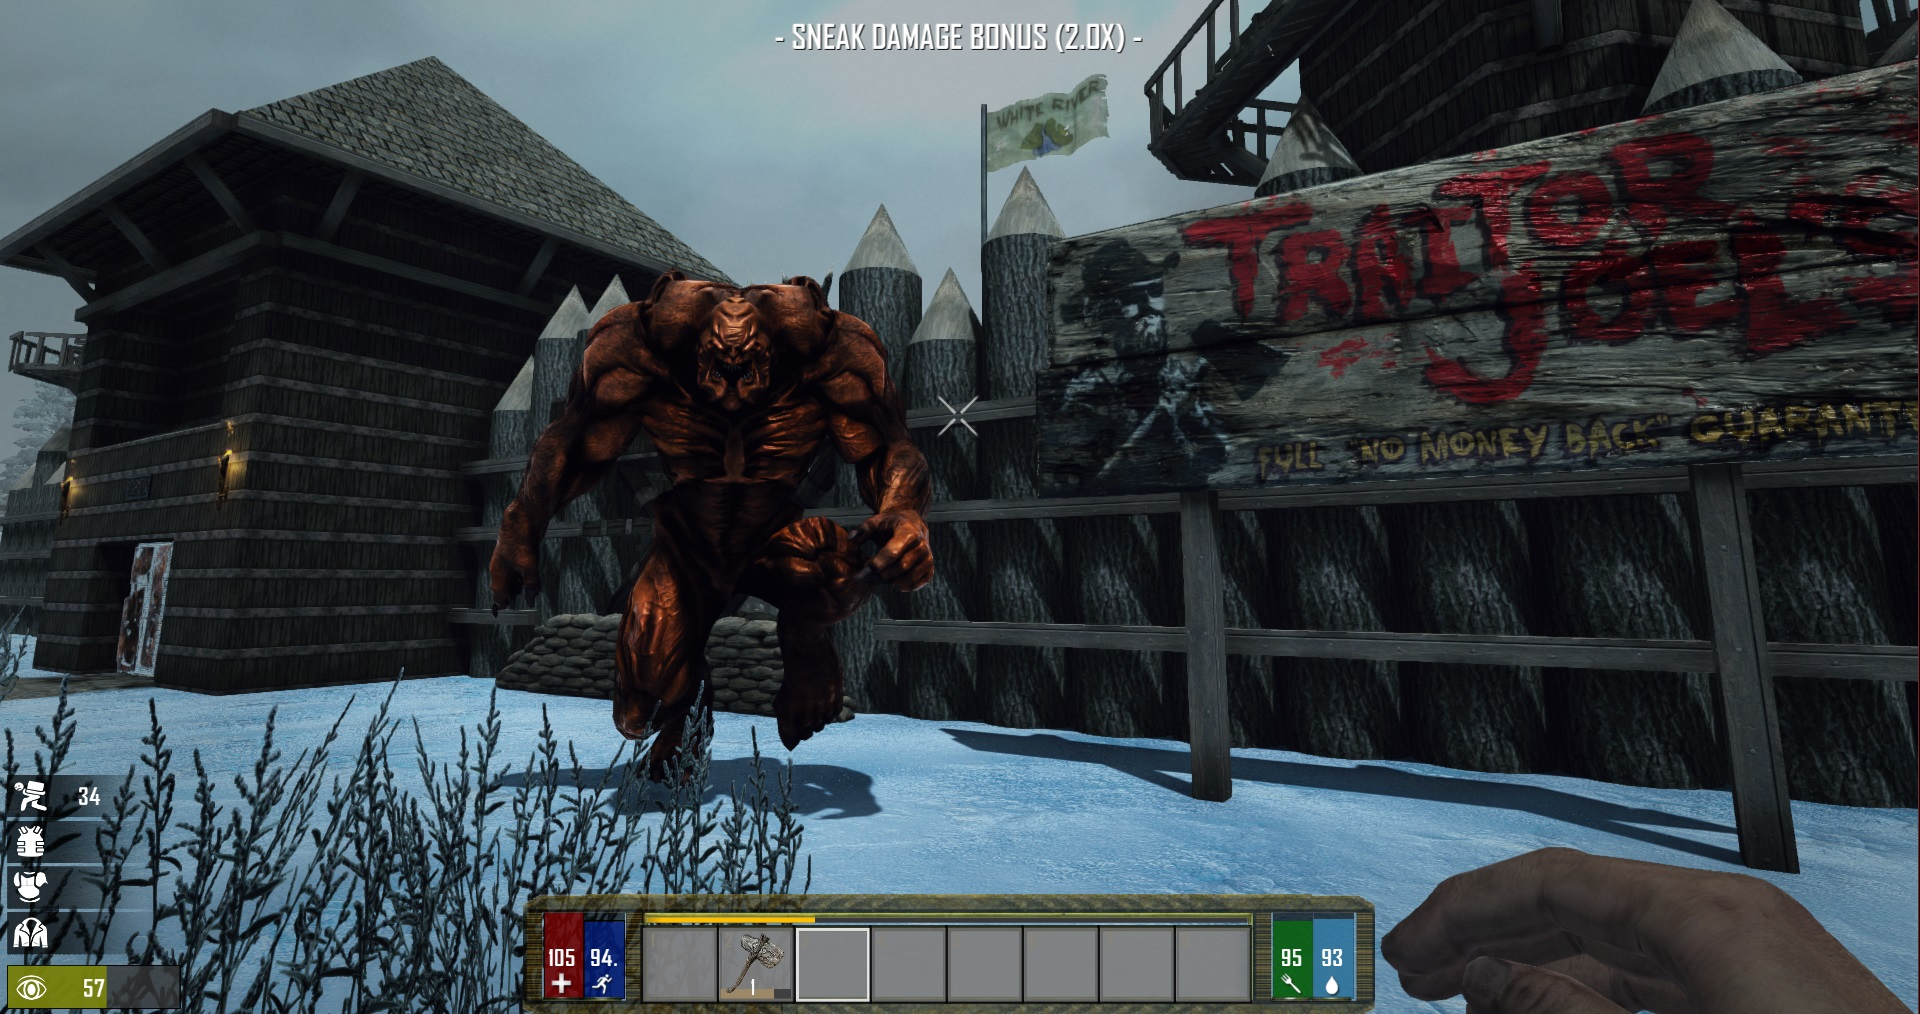 Darkness Falls A 7 Days To Die Overhaul